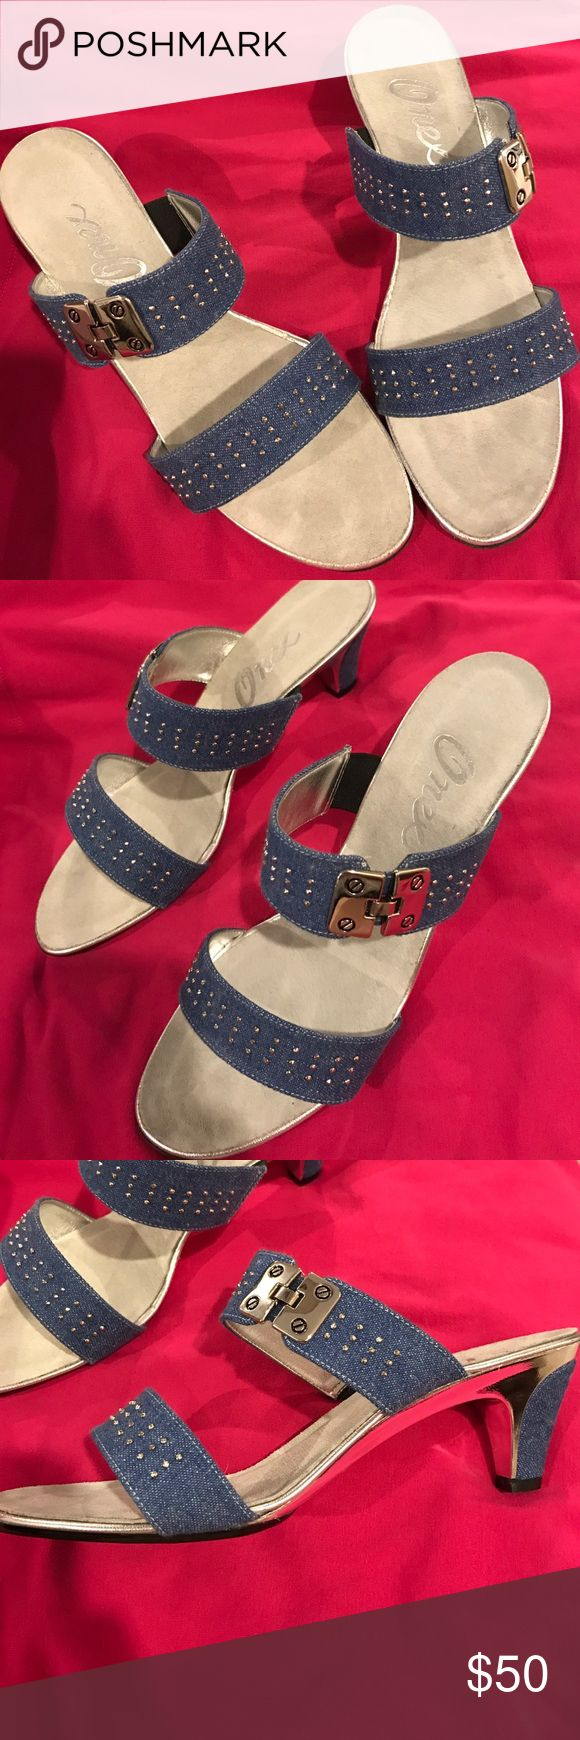 """Onex Denim Ceasars Heels So cute!  Perfect for this season's Denim trend!!  These shoes have Denim straps with silver hardware and studs. They have a 2 1/2"""" Denim heel. Brand new. Comes with box. Onex Shoes Heels"""